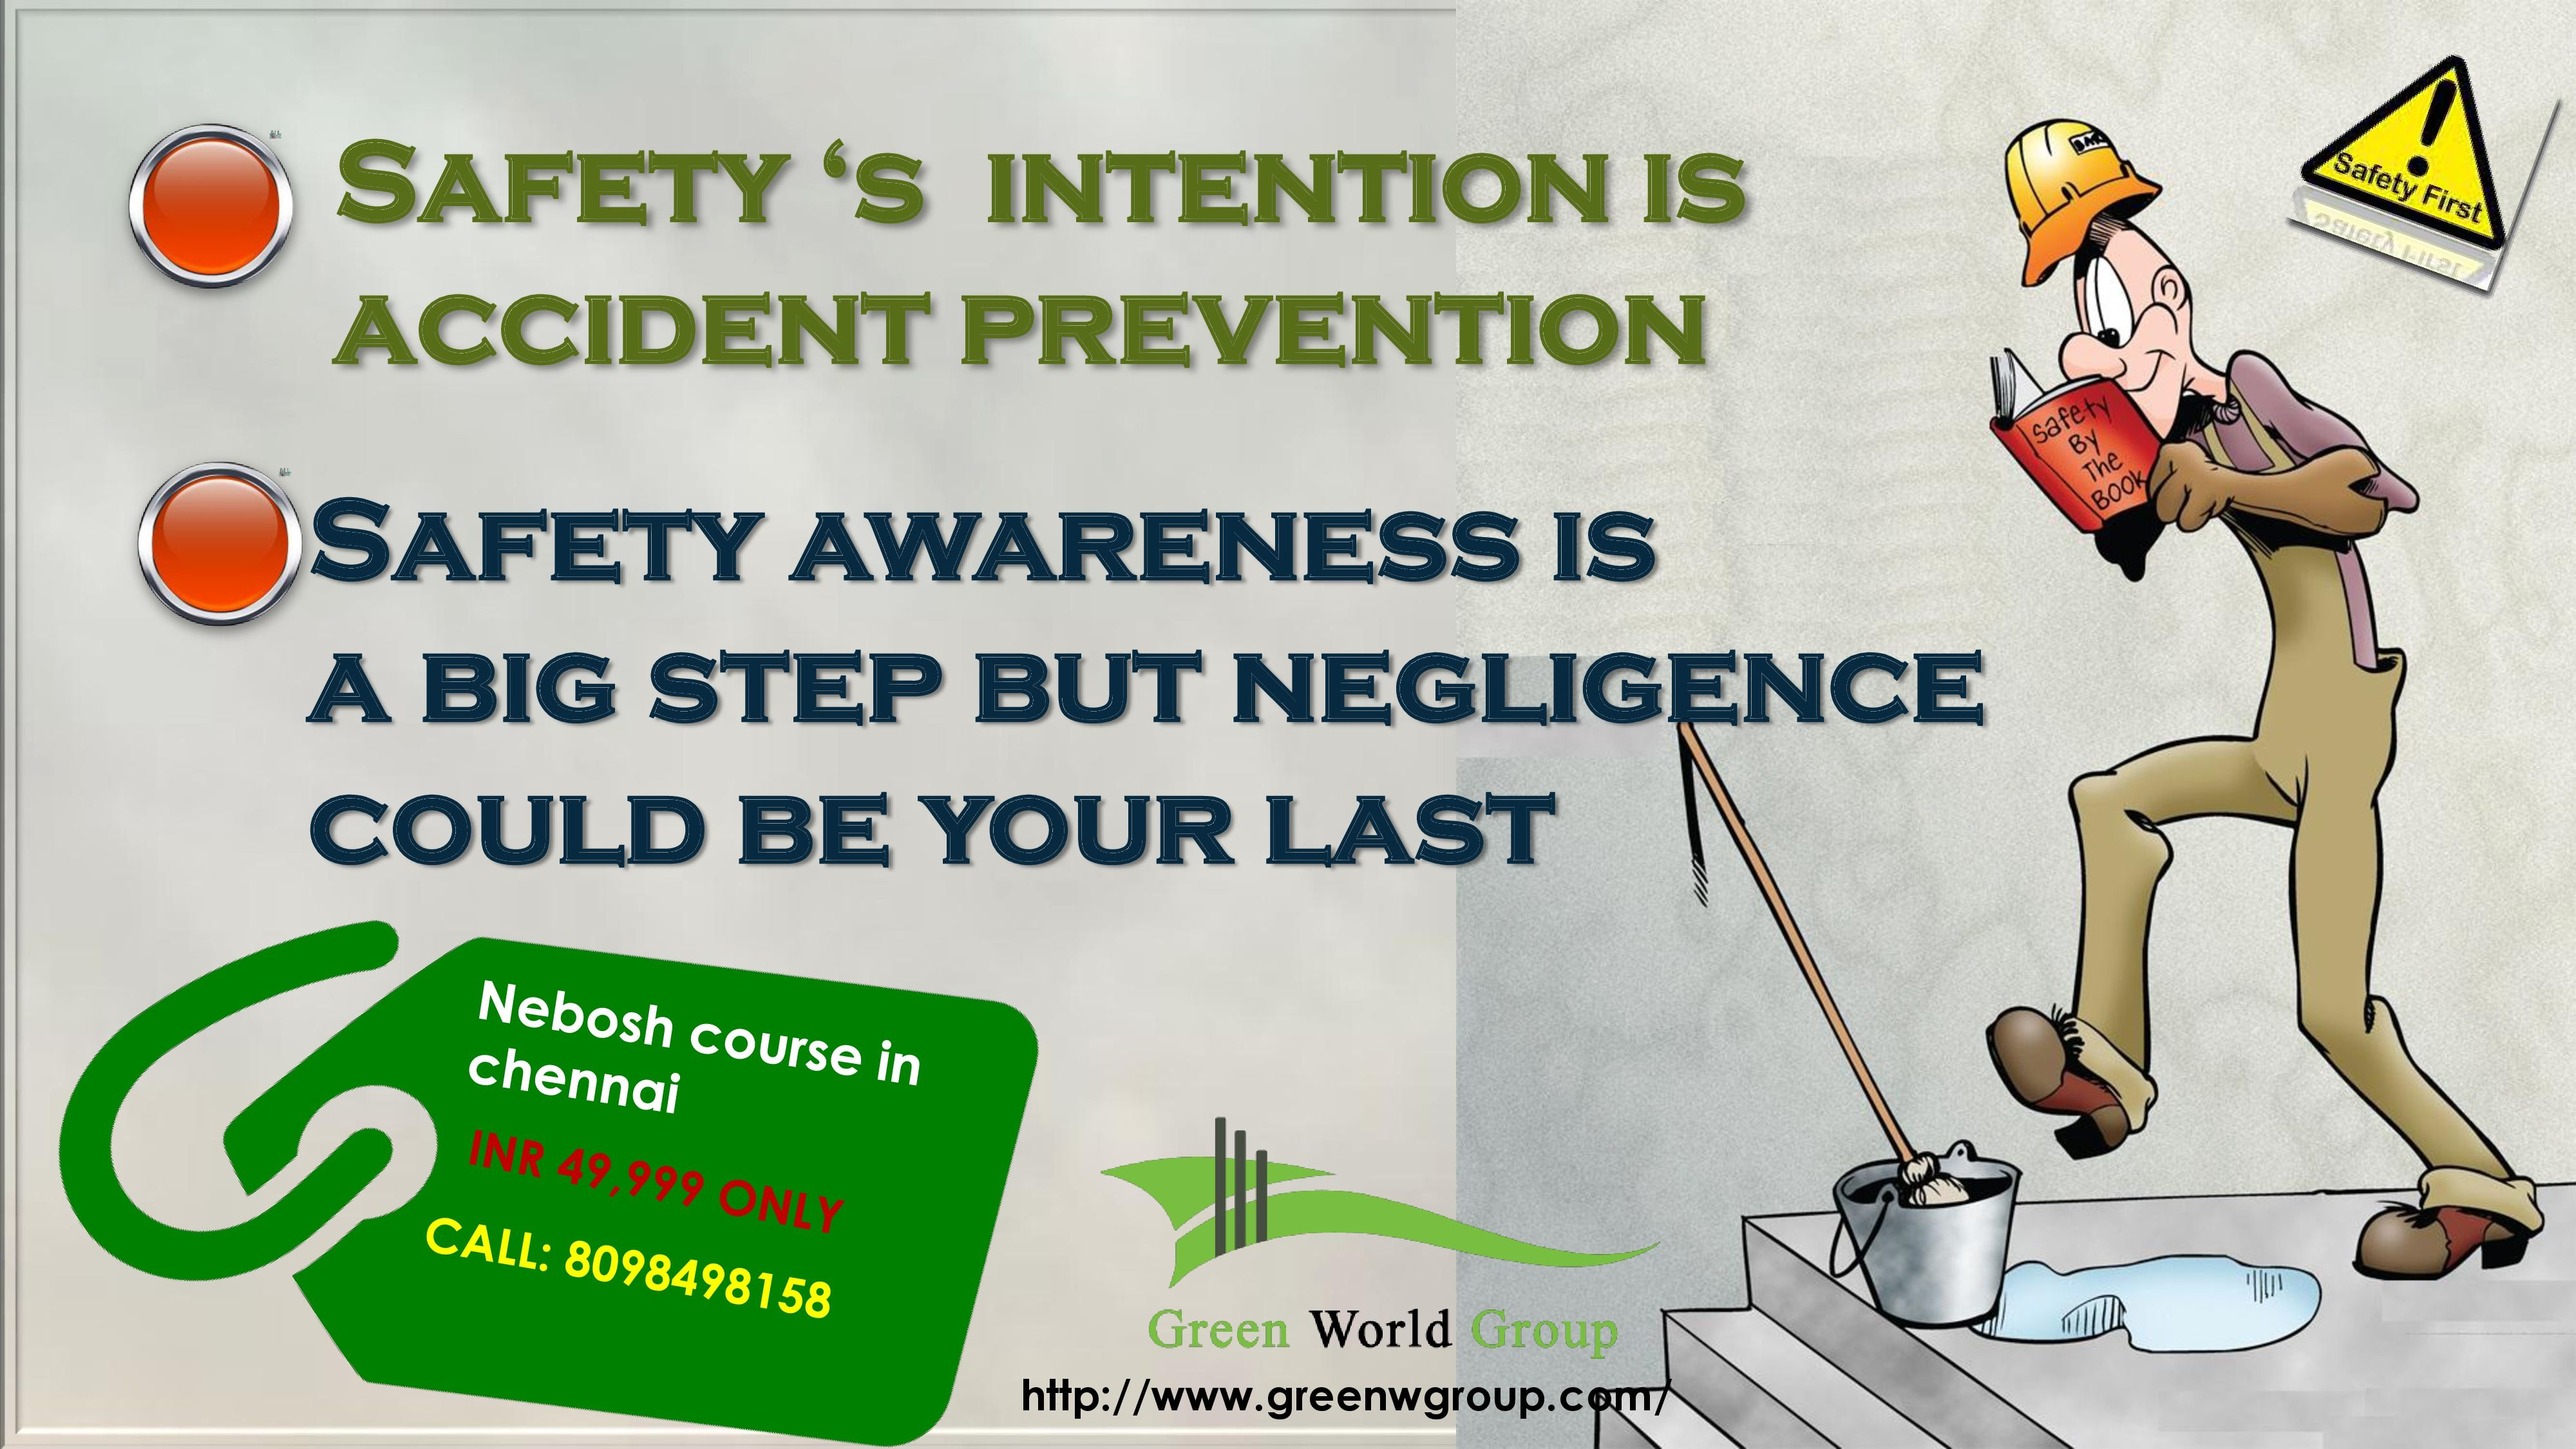 Safety awareness is a big step but negligence could be